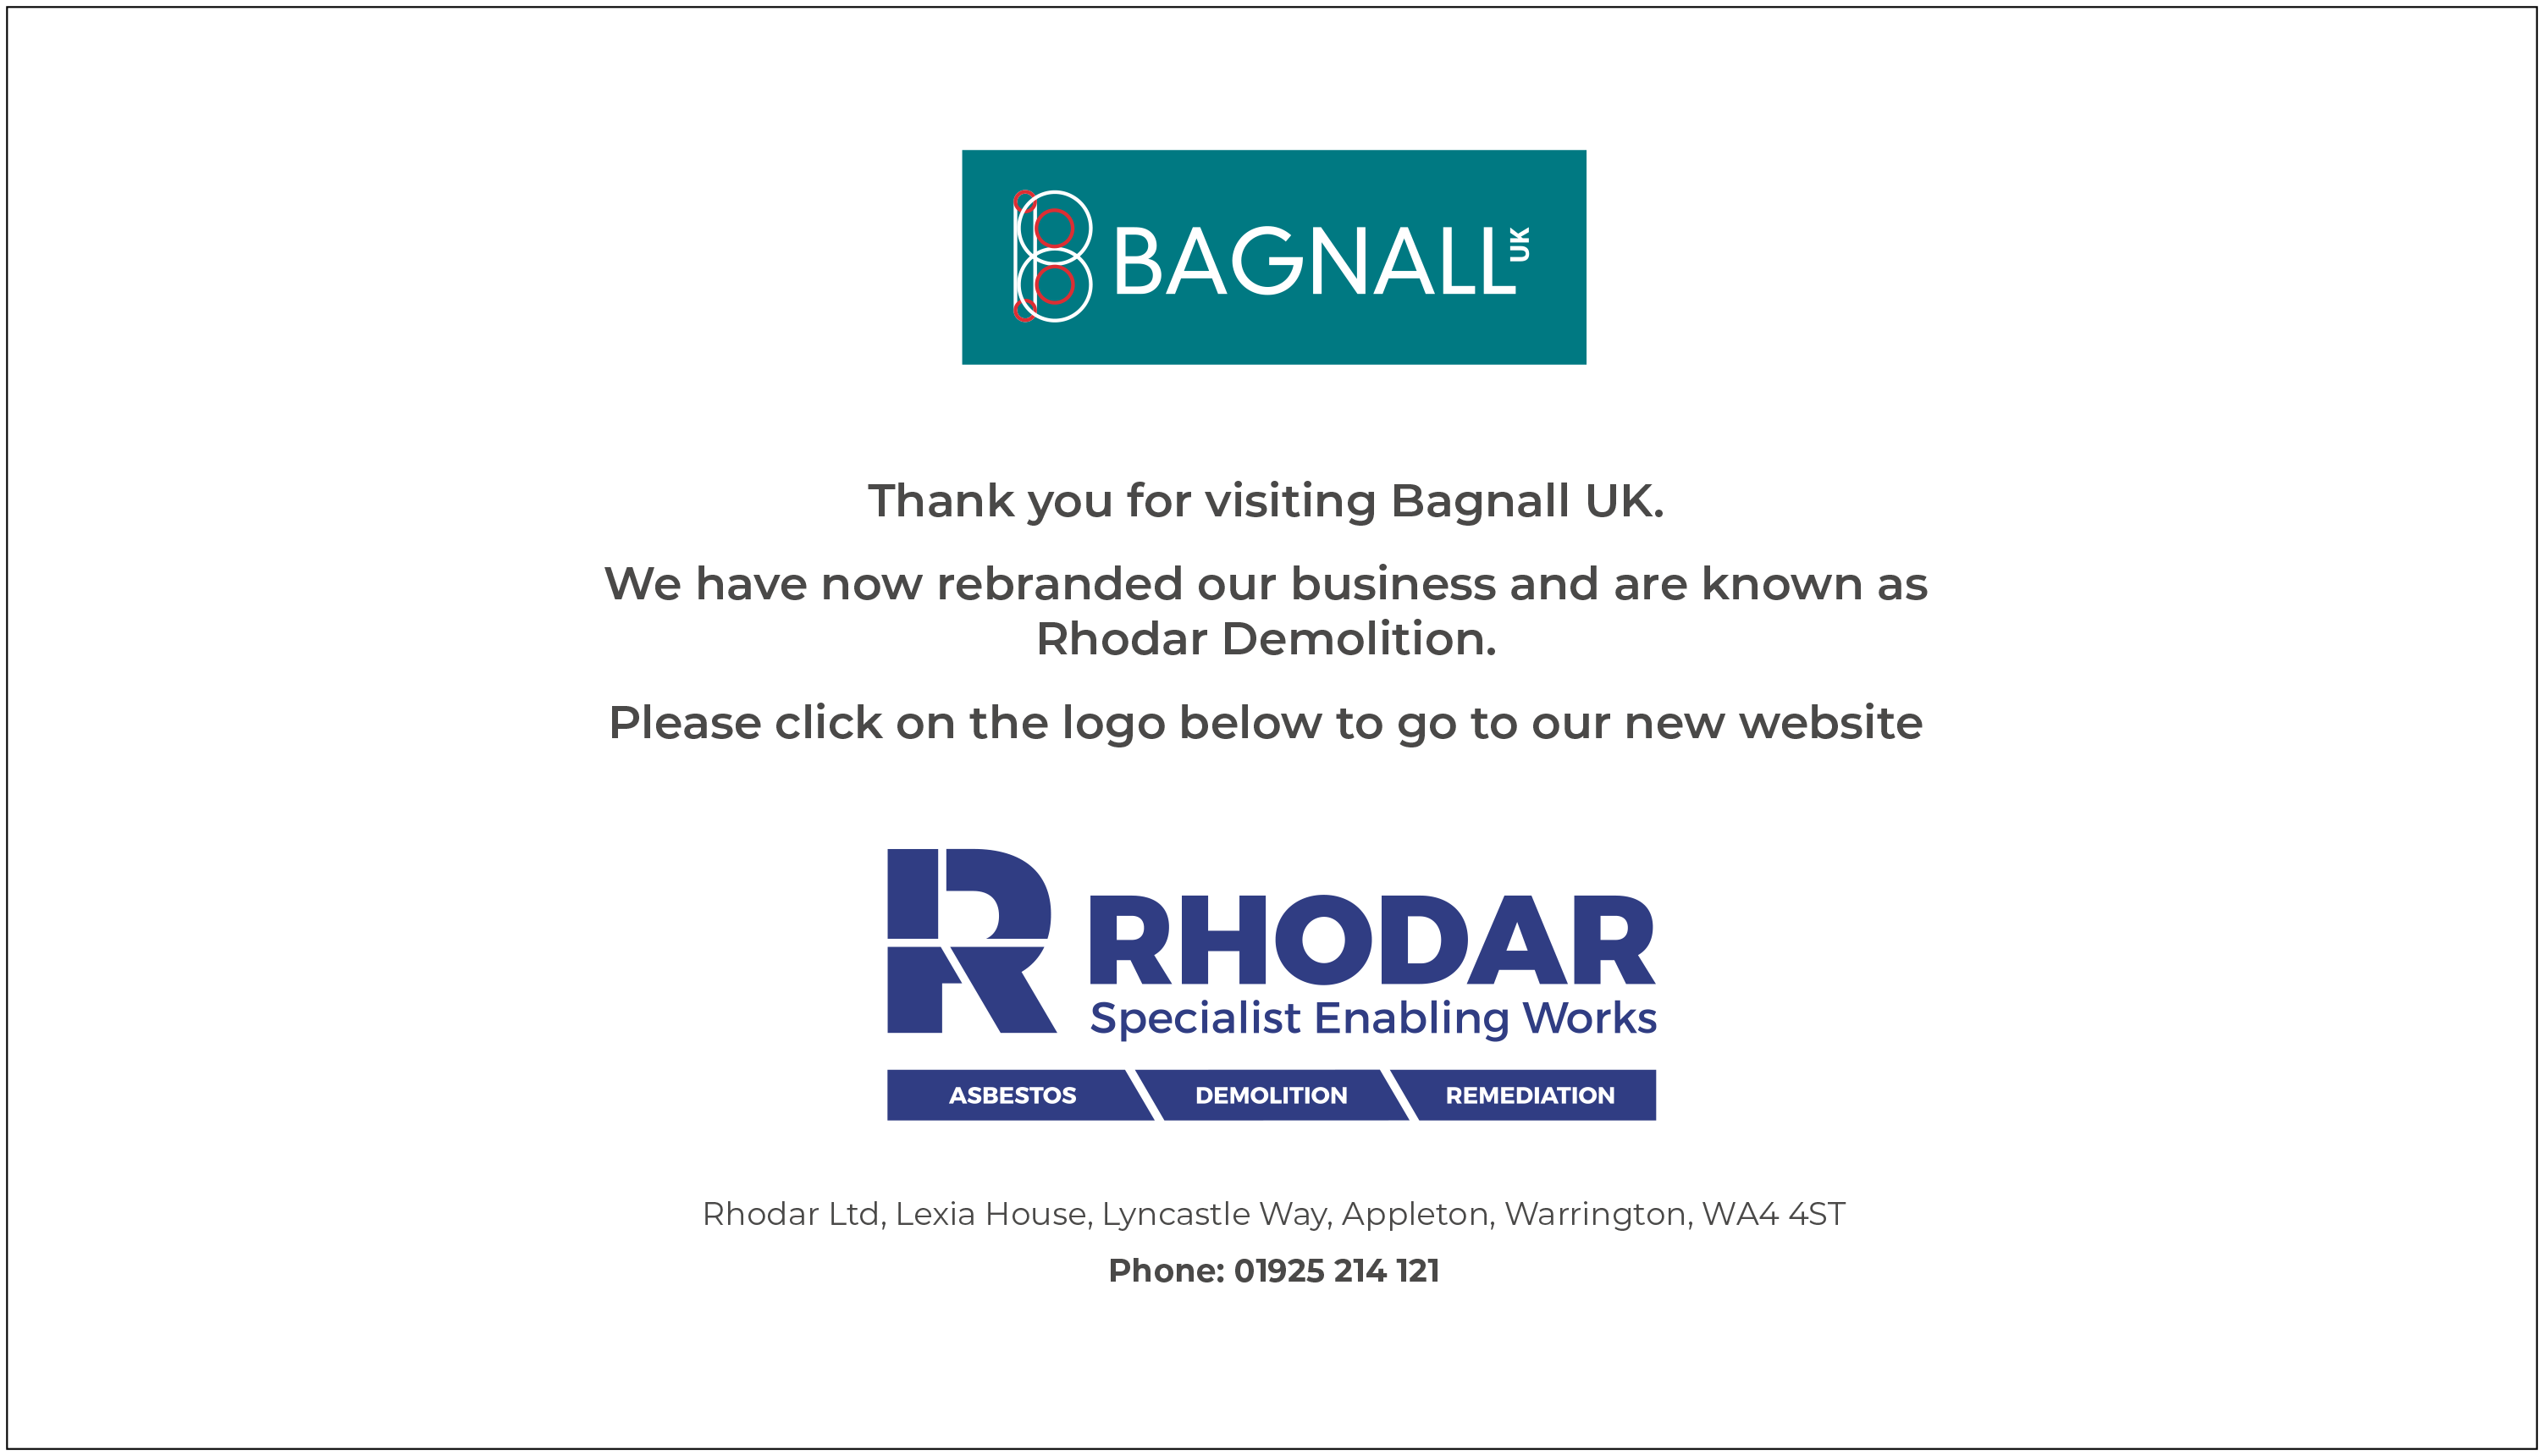 We have rebranded as Rhodar Demolition, click to visit the Rhodar website.